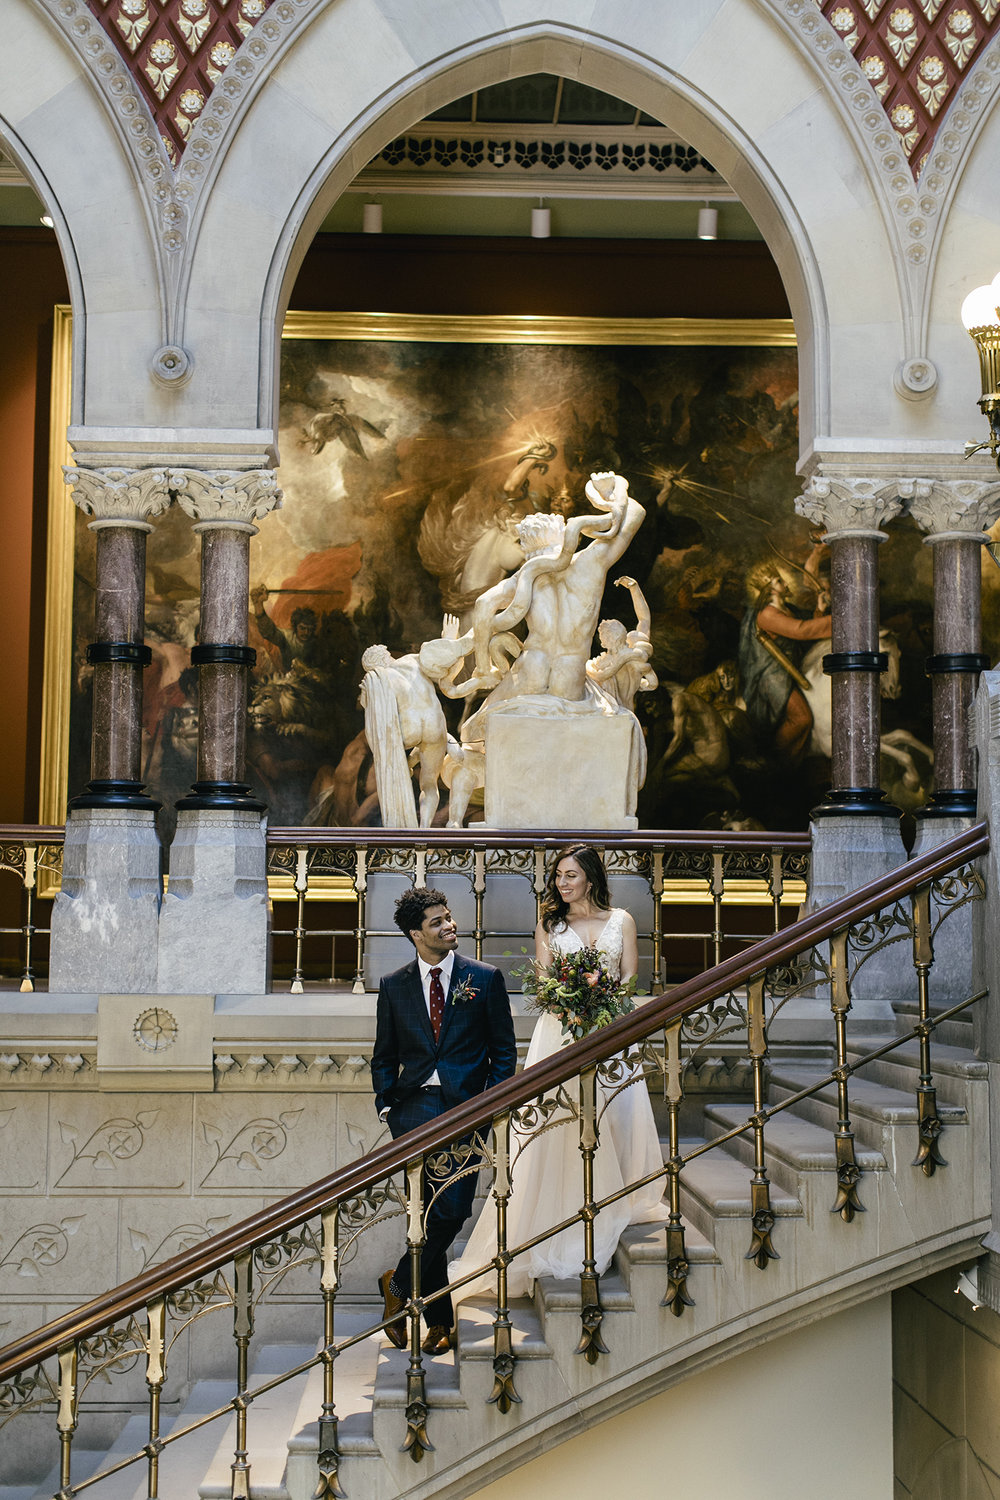 photography-wedding-weddings-natural-candid-pafa-pennsylvania academy-philadephia-philly-philadelphia wedding-mixed race-editorial-modern-fine-art-039.JPG